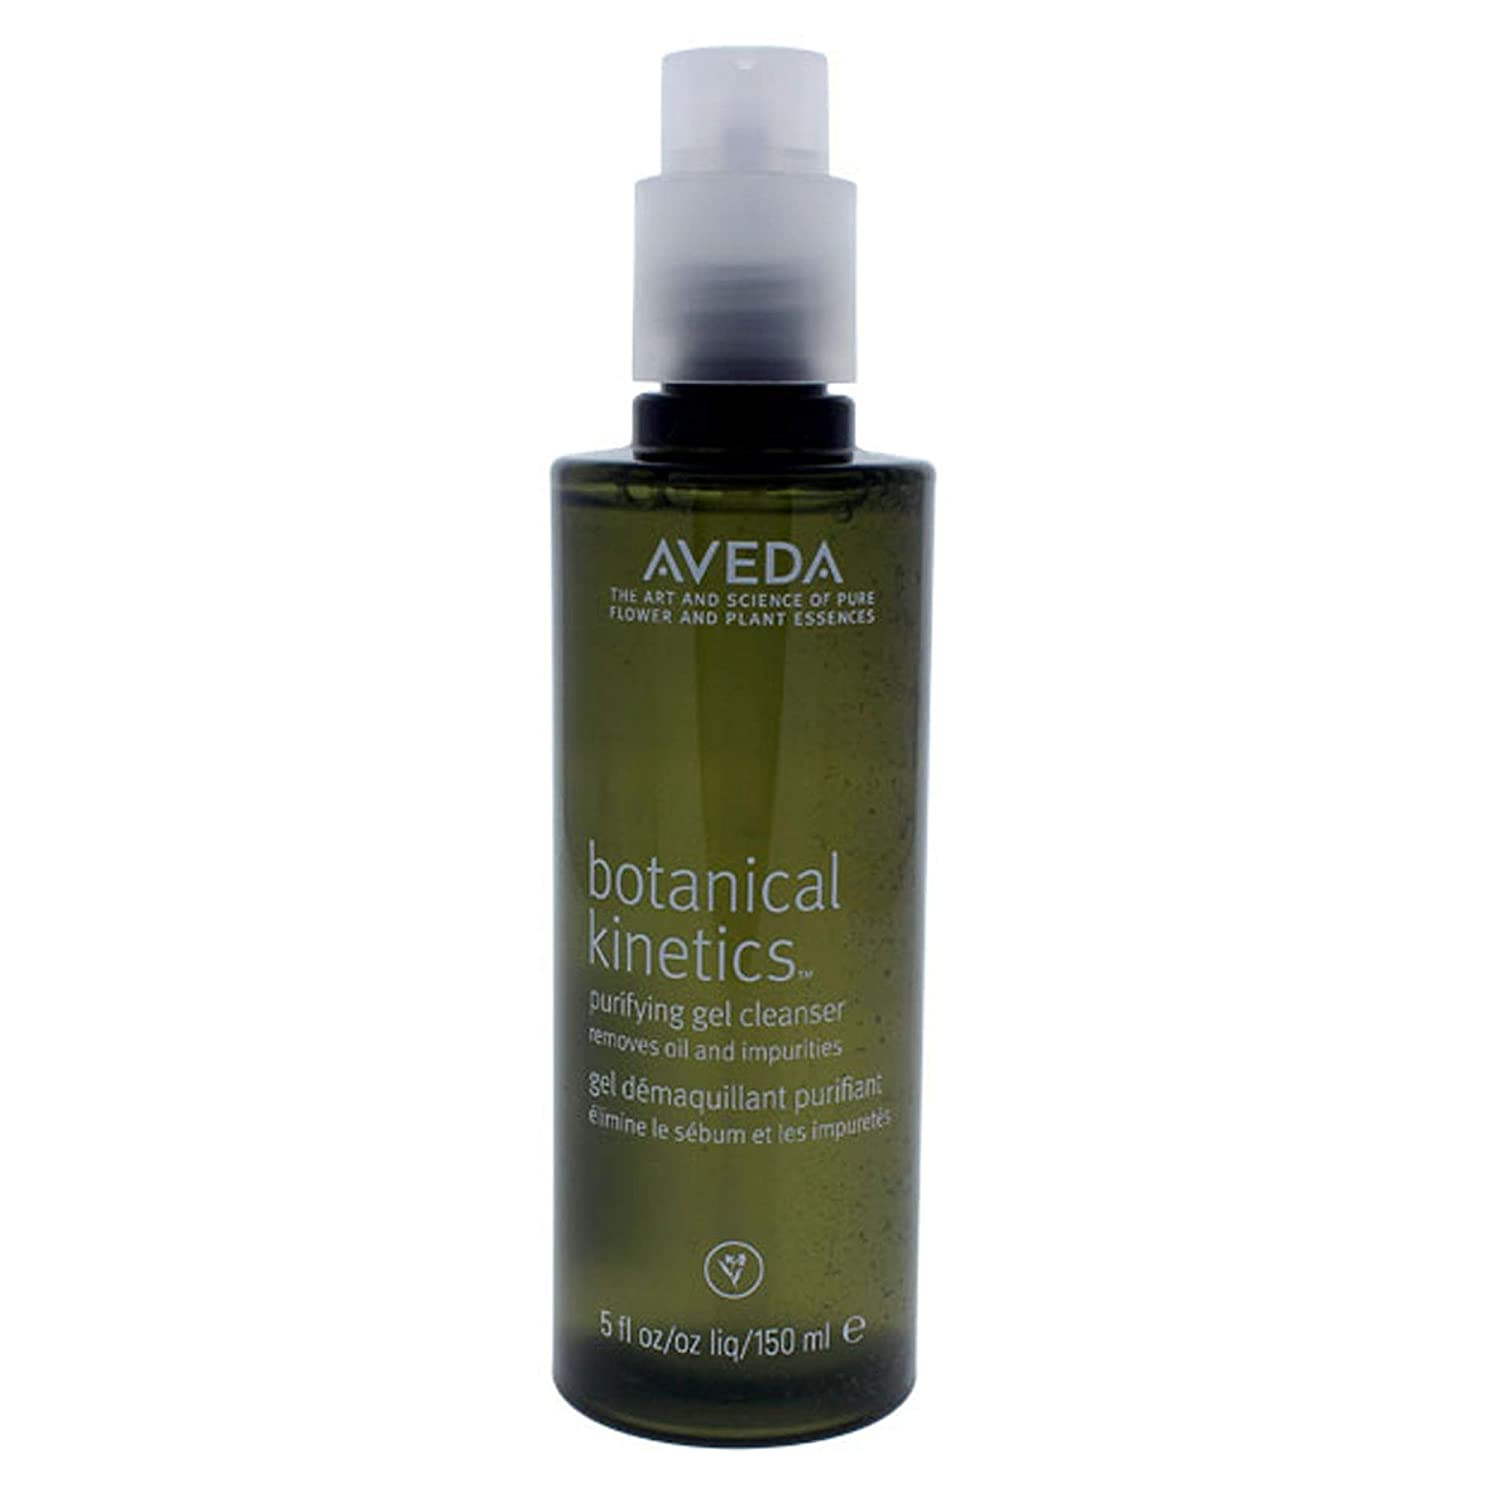 Botanical Kinetics Purifying Gel Cleanser by Aveda #9